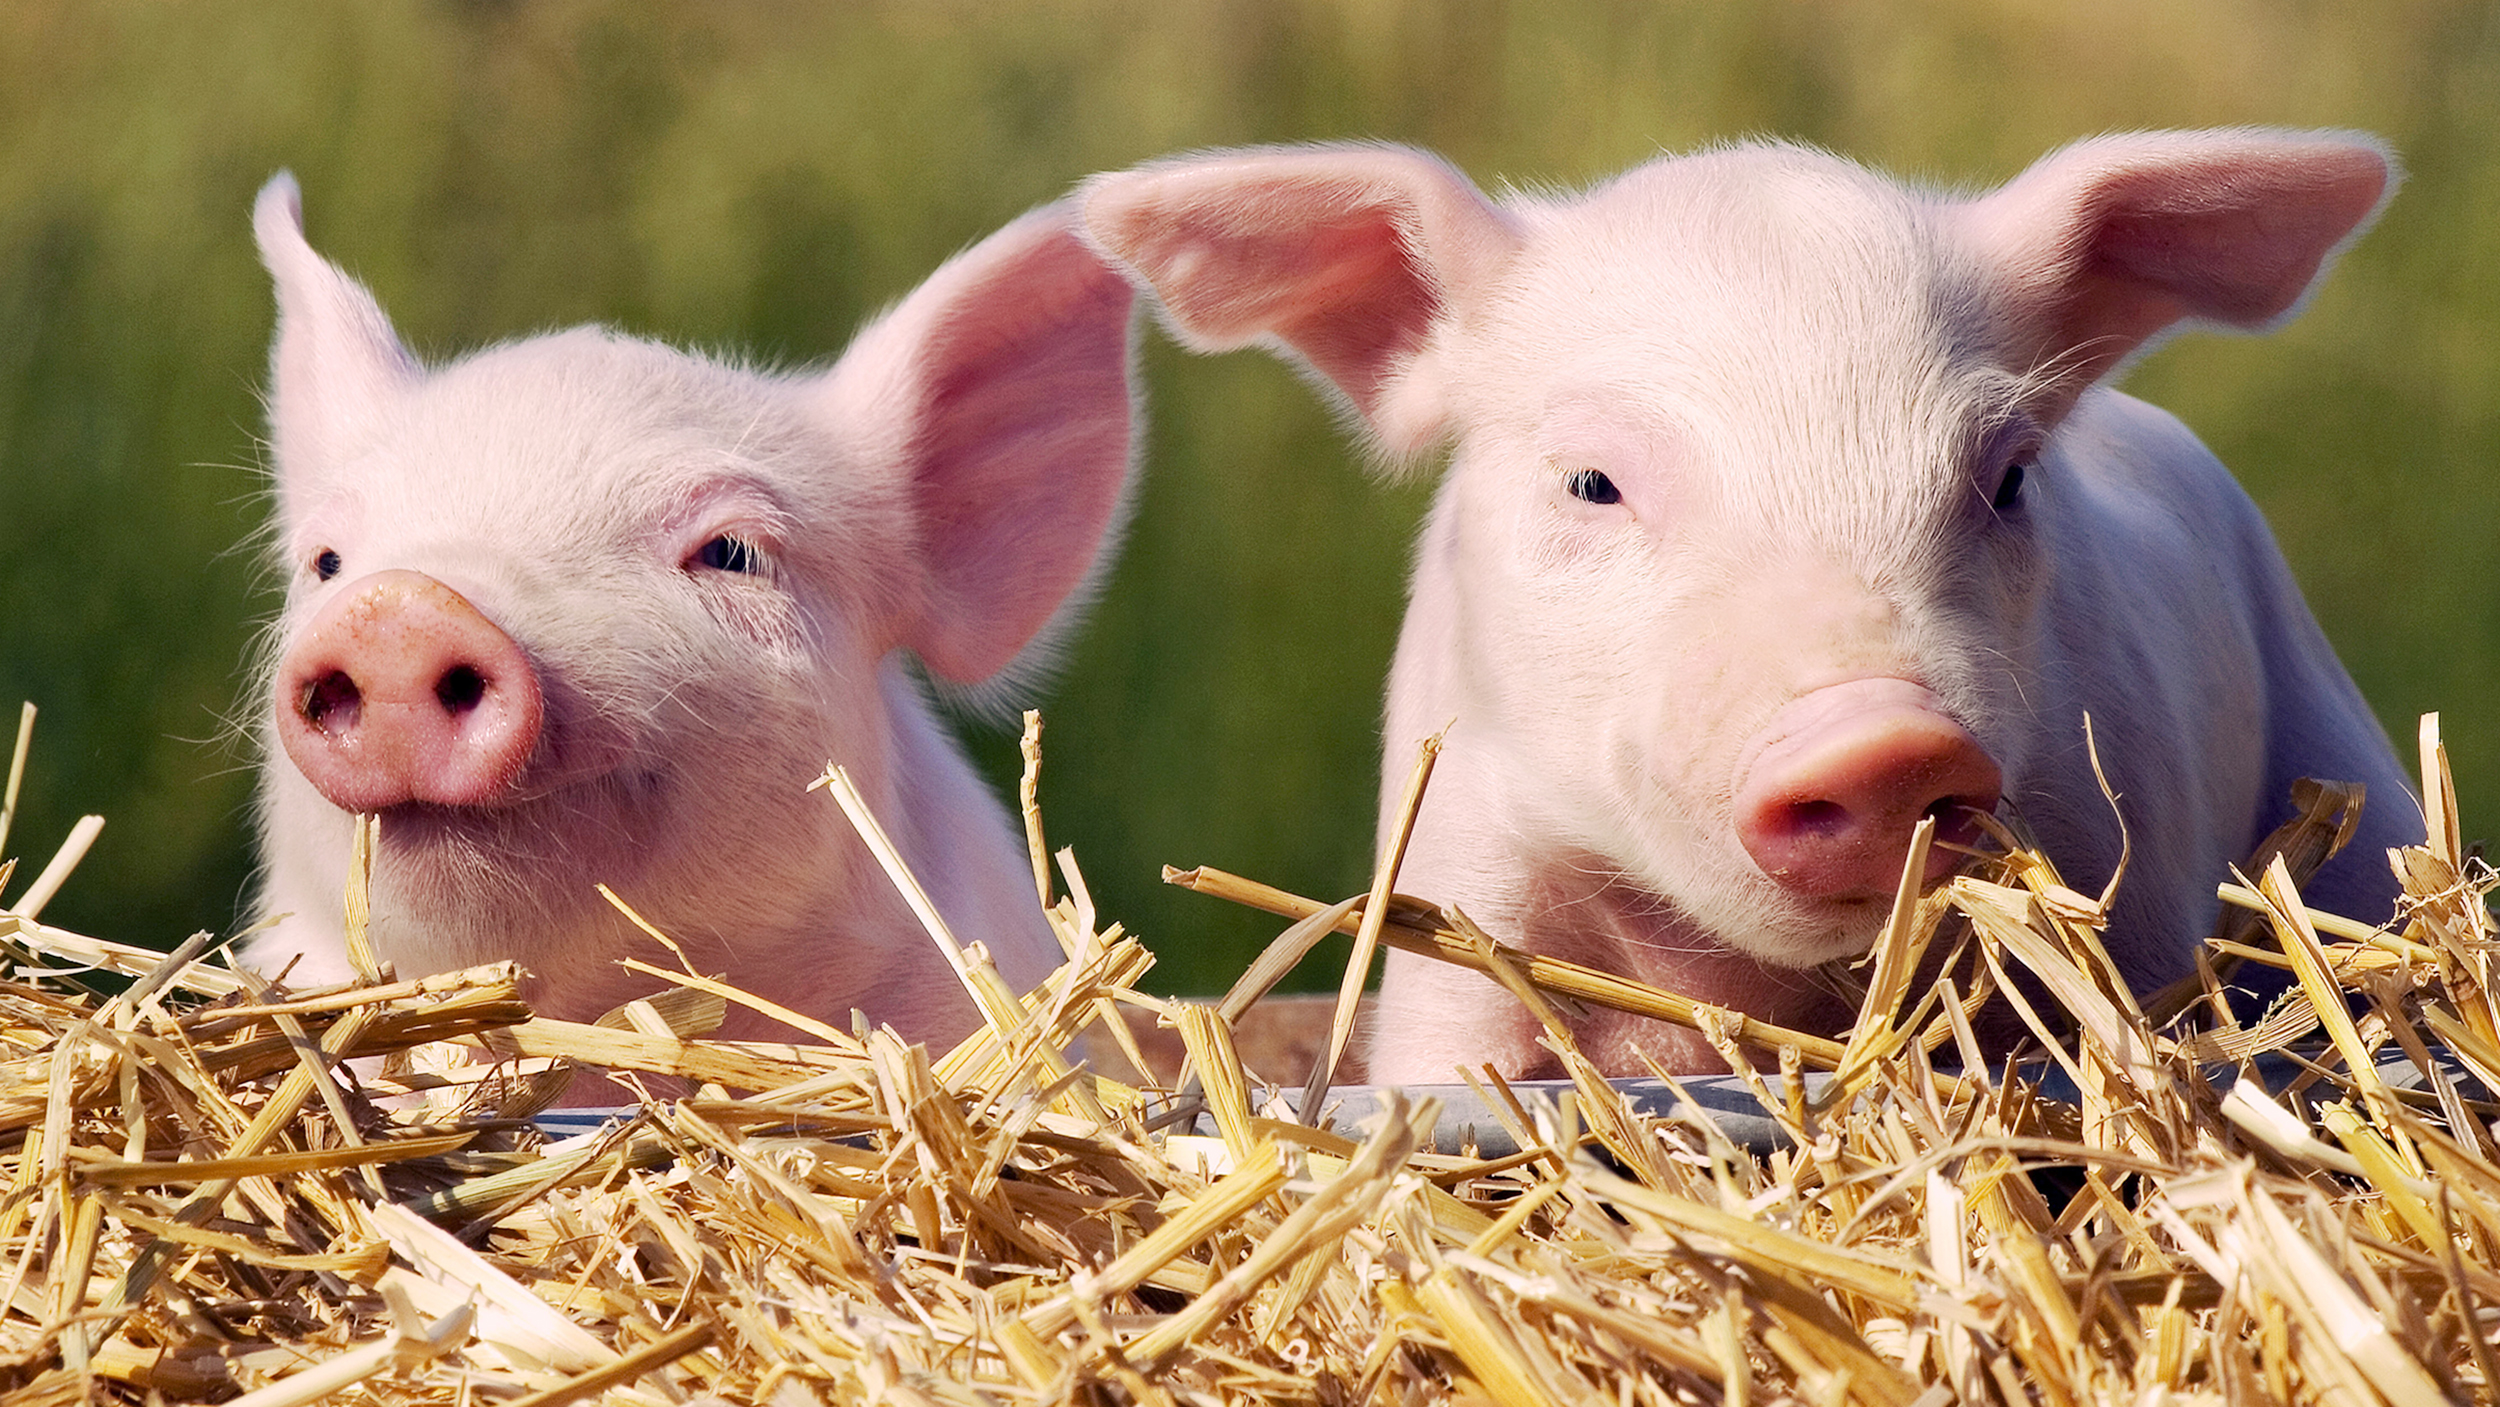 Piglets saved from fire served as sausages to firefighters ...